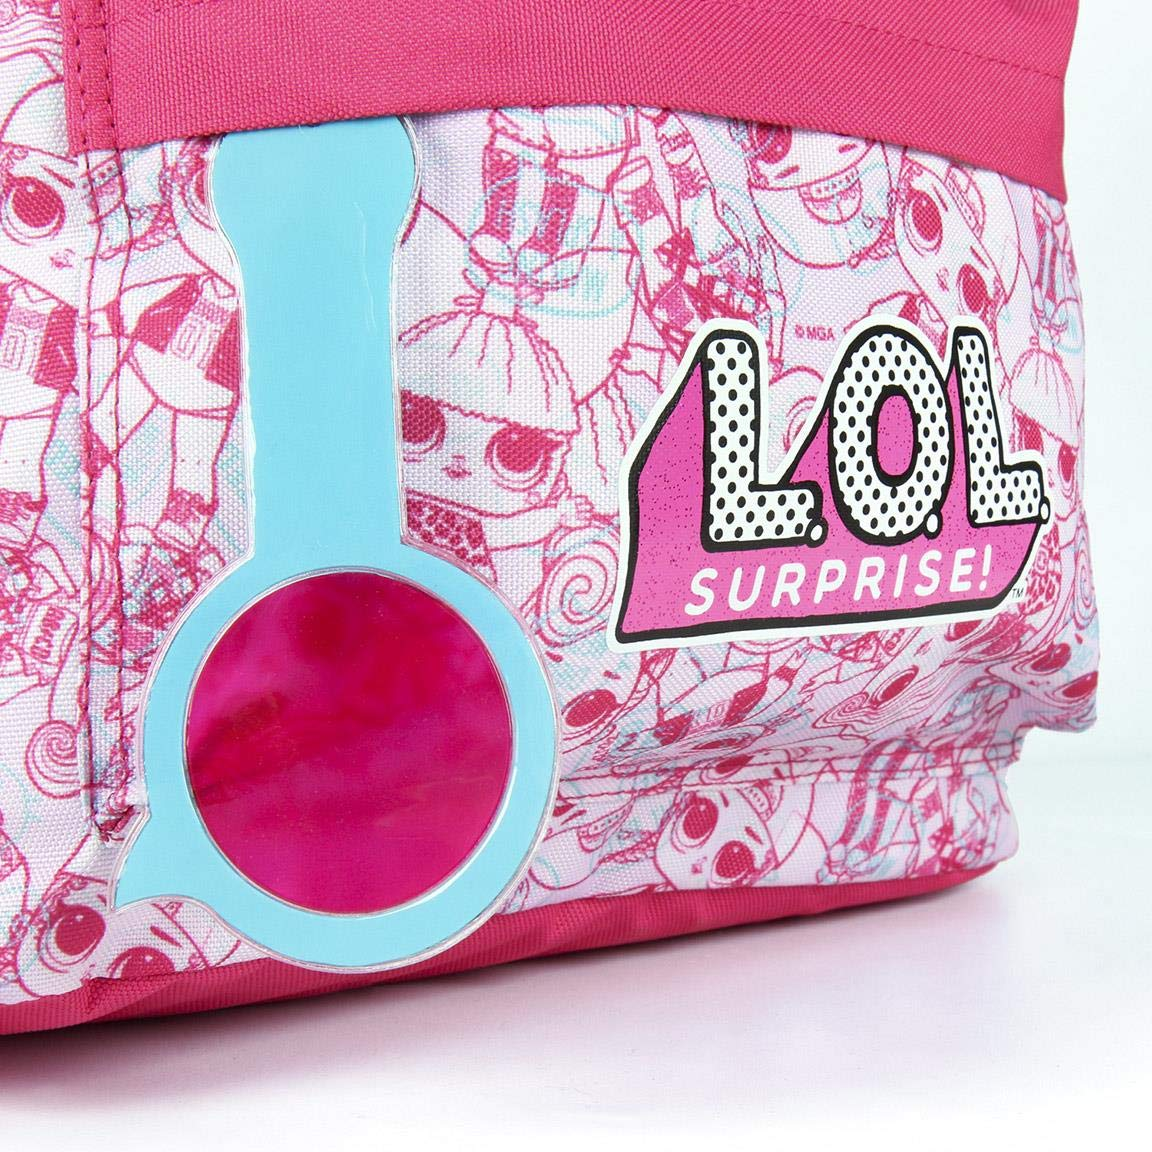 Mochila LOL Surprise - Primaria 41 cm: Amazon.es: Equipaje